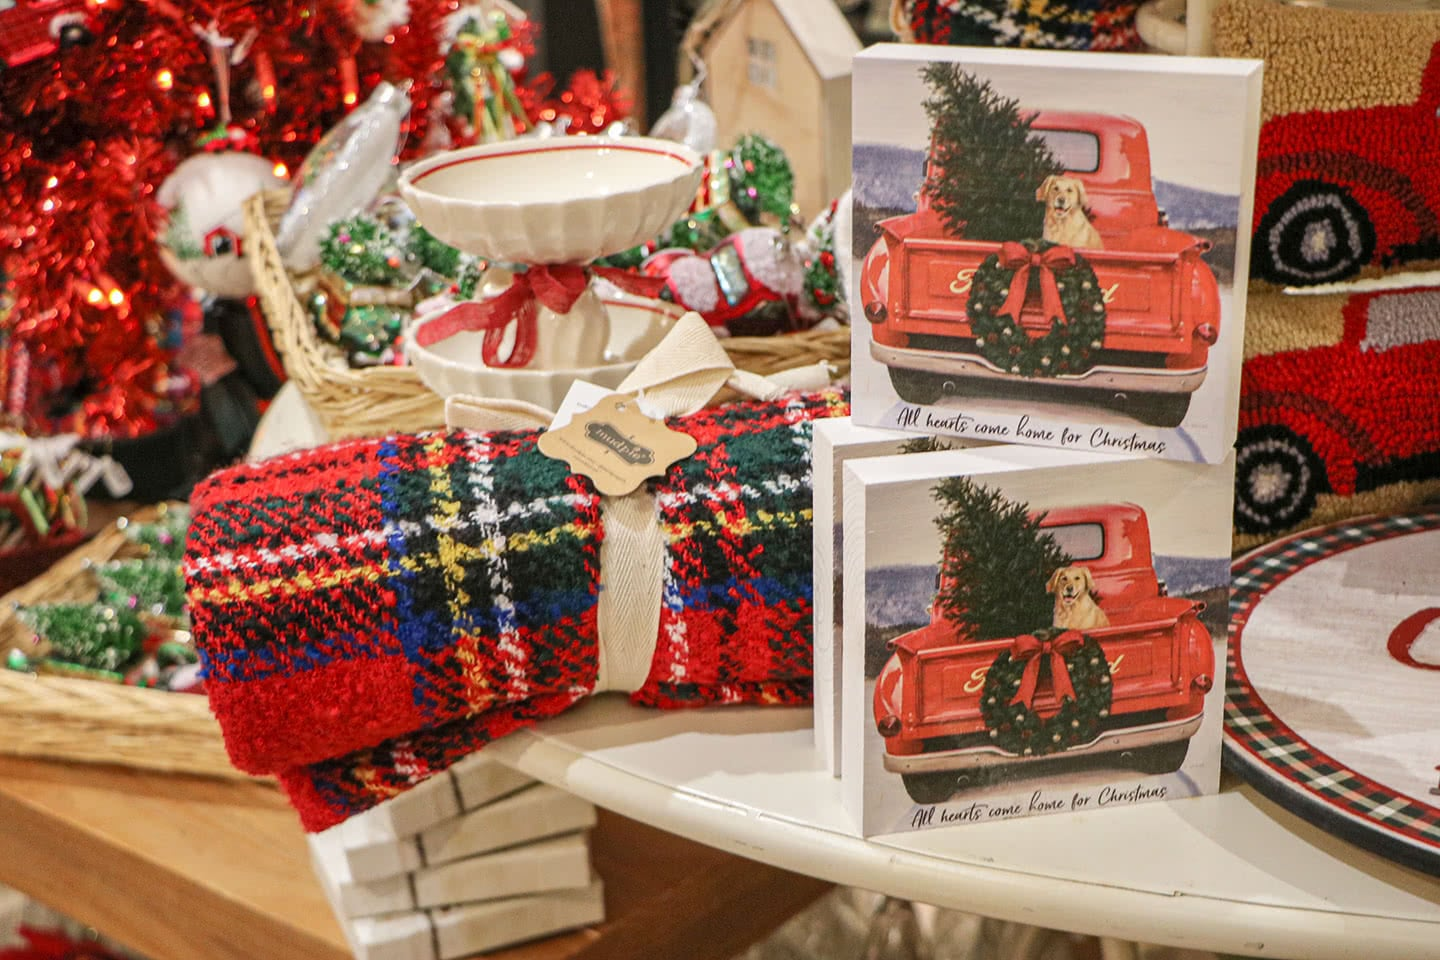 Red Pickup Trucks with Christmas Trees Wall Decor and Blankets